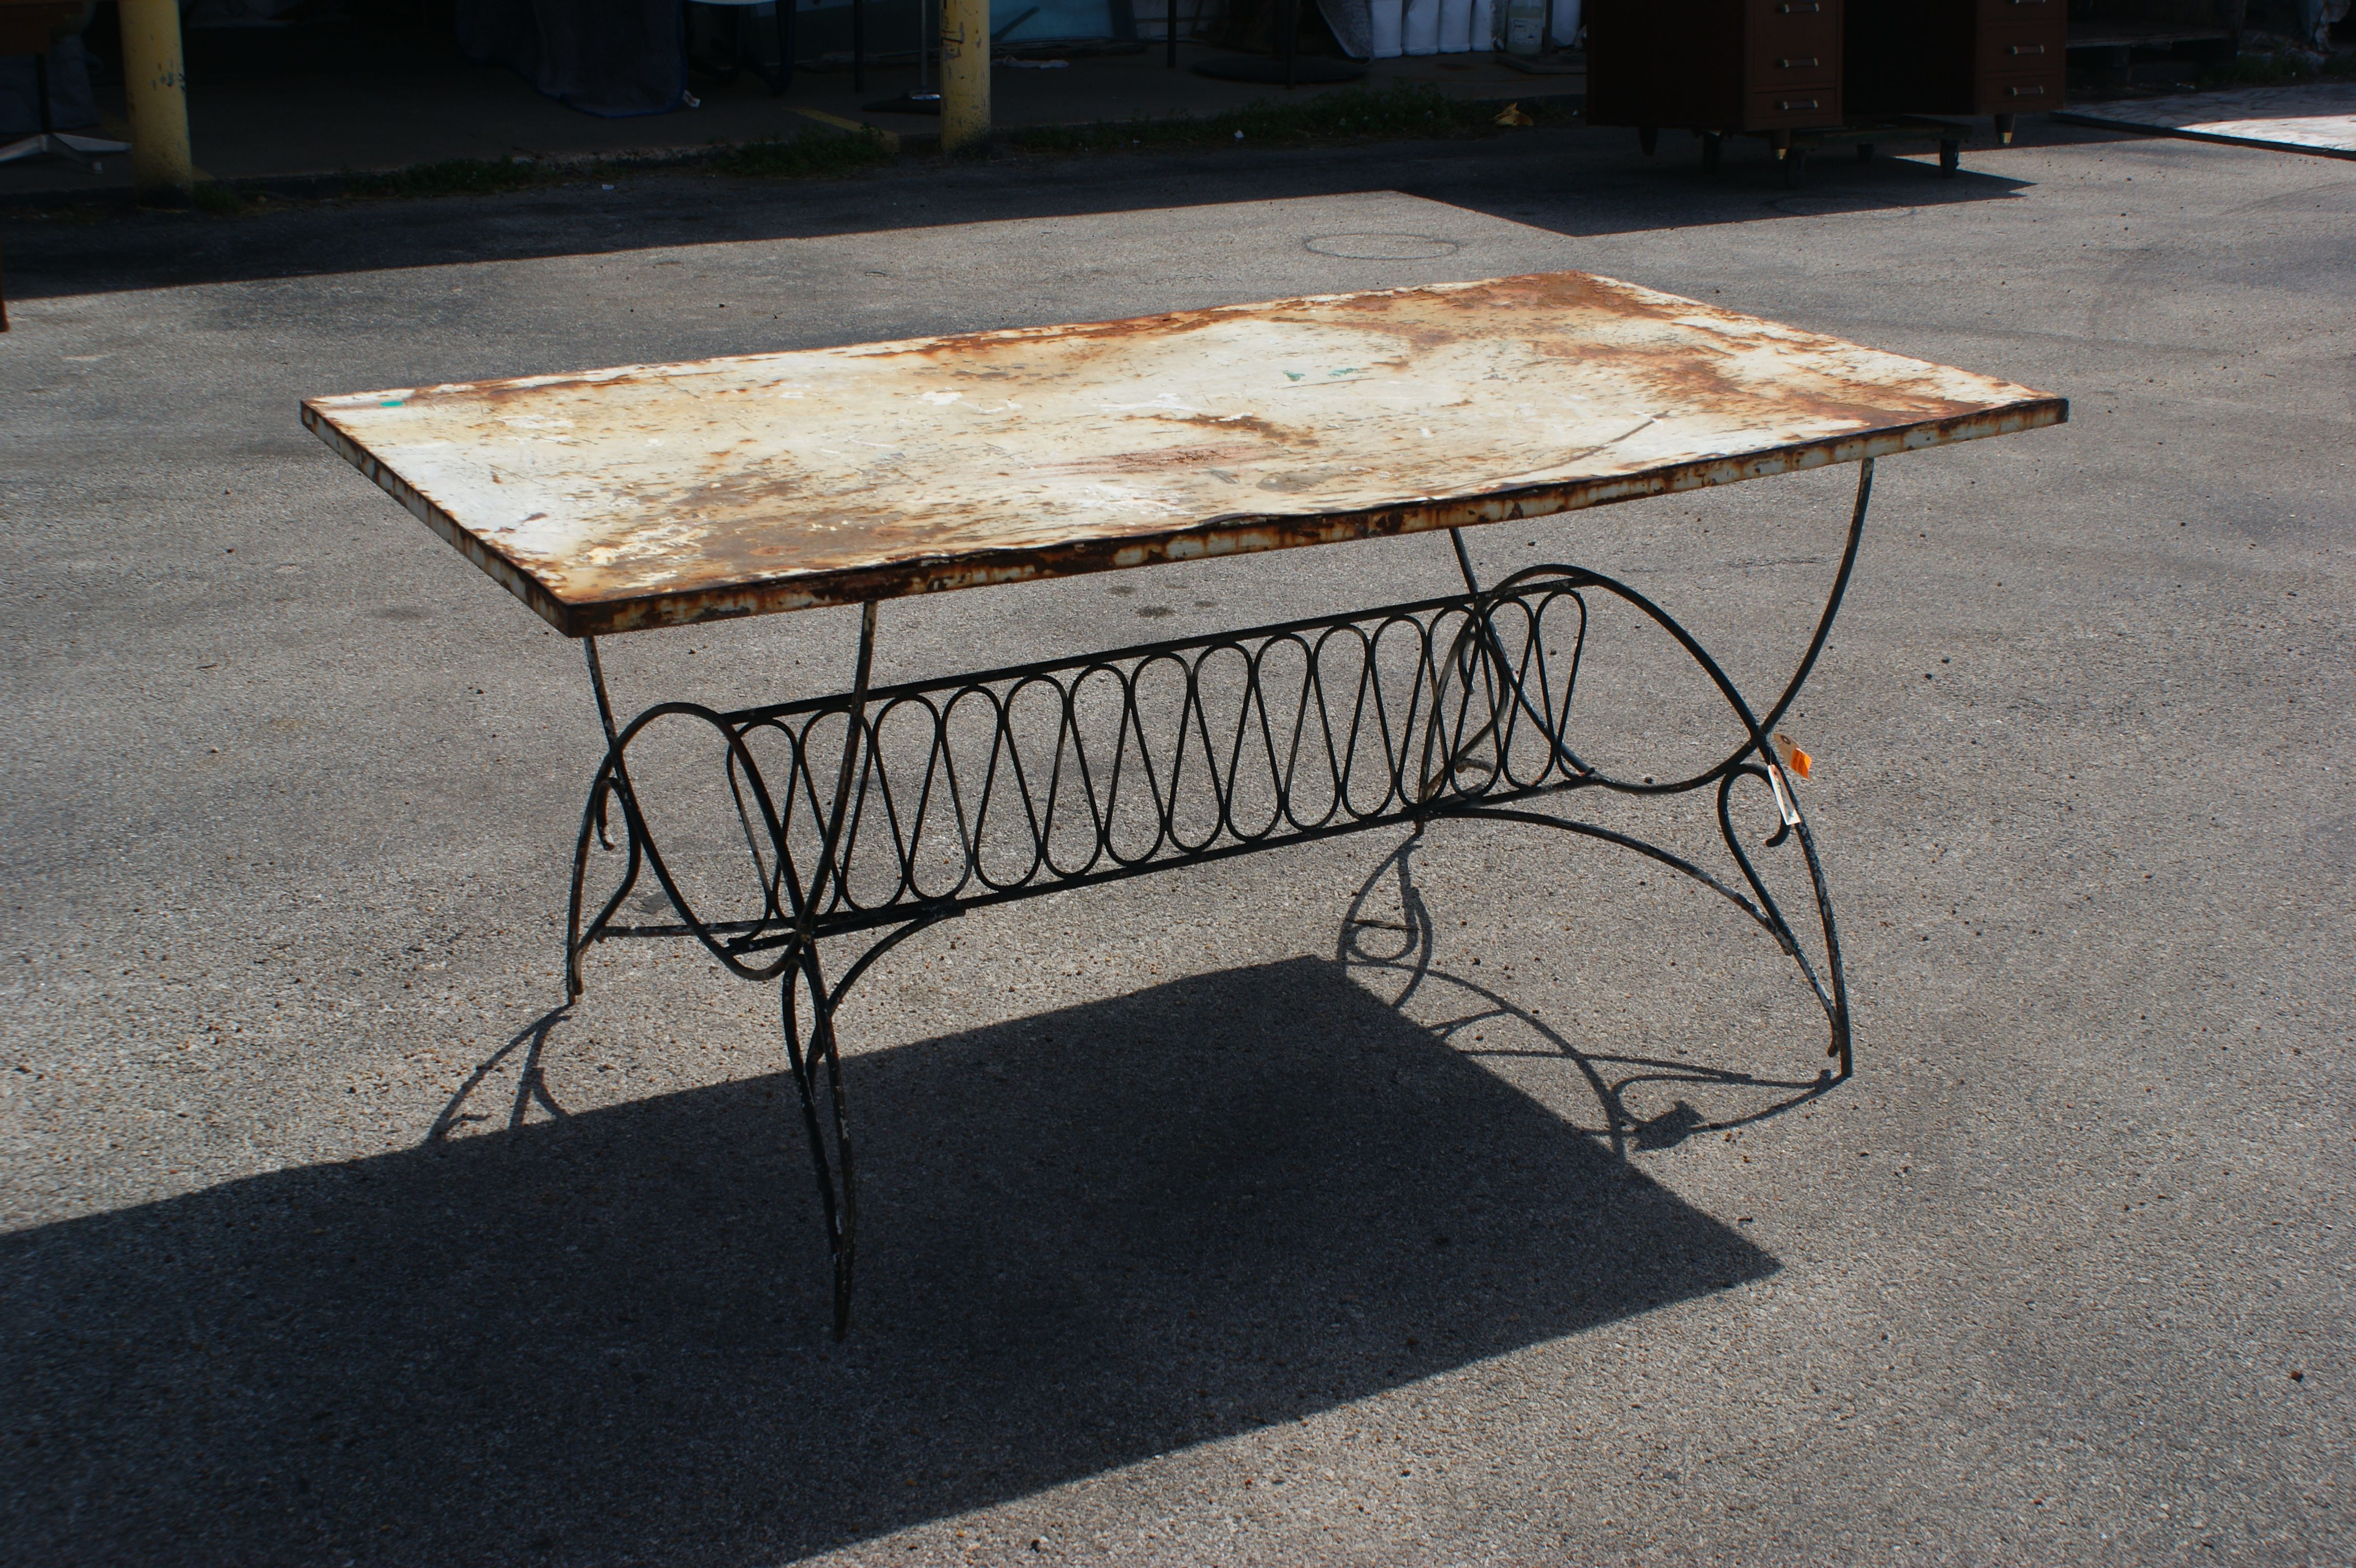 virgin patio tables of m no photos furniture pinterest june i a how improvement refinish best longer old home lovely to metal pictures